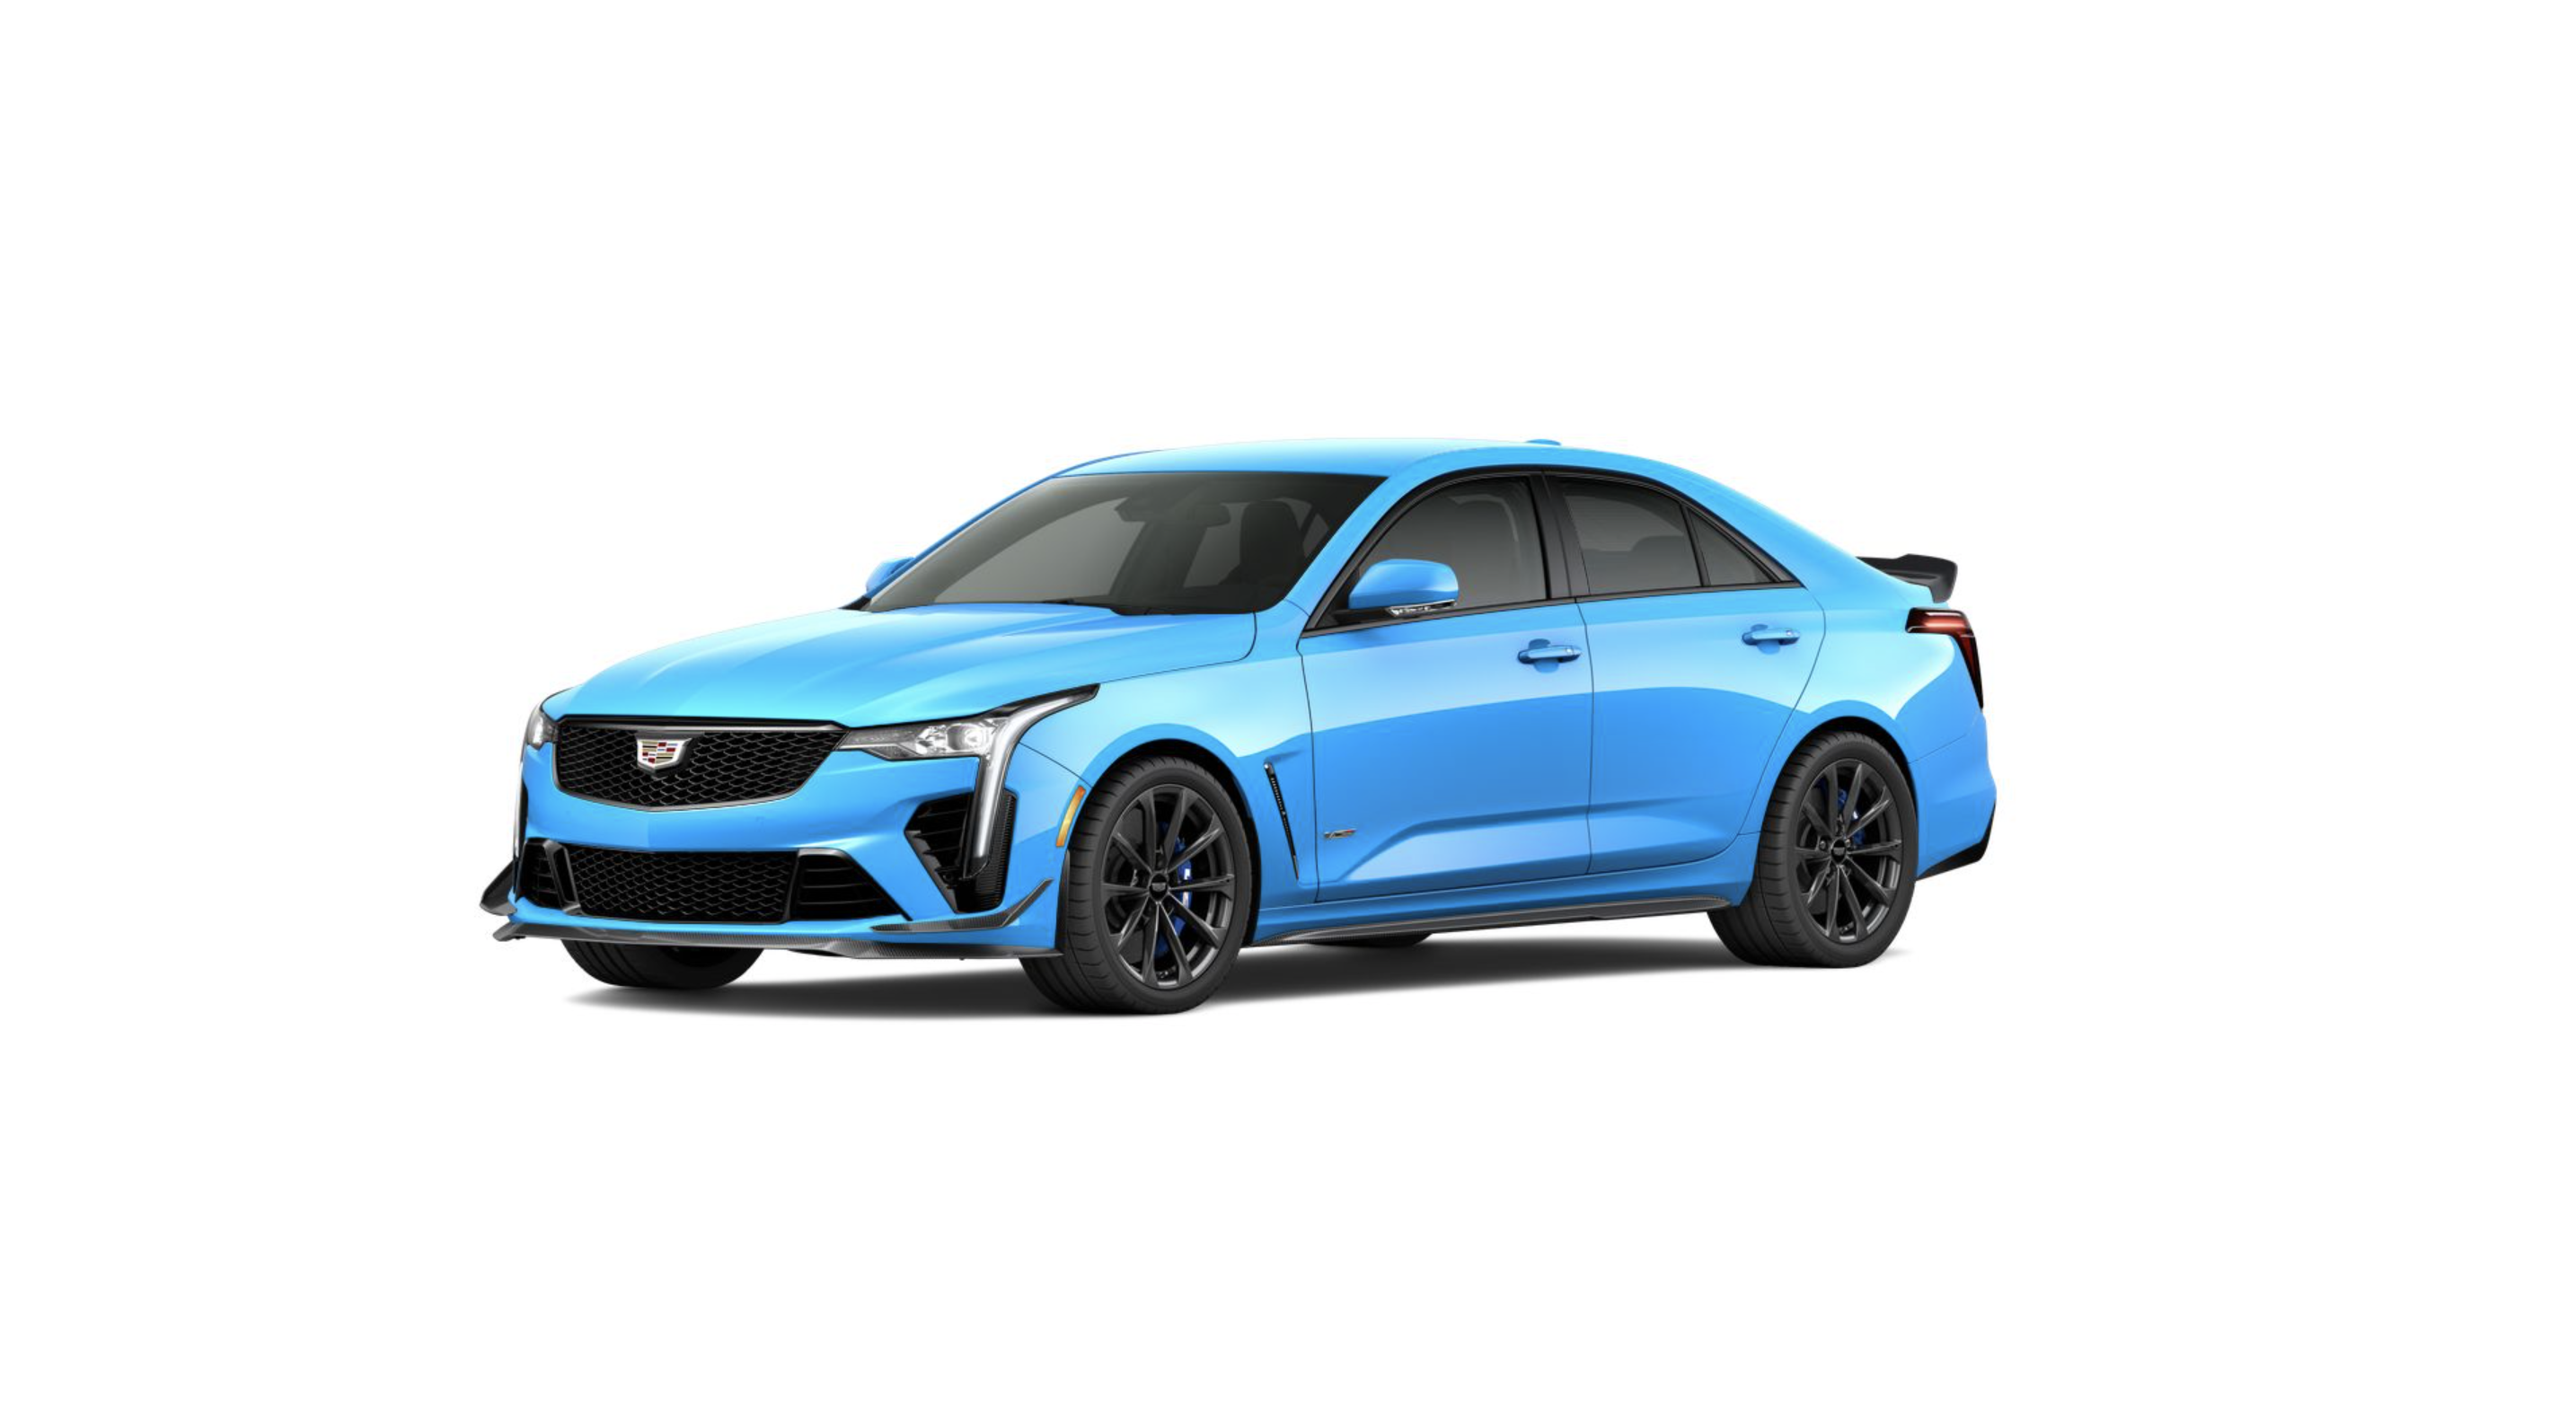 Turn Him Loose: Here's What You Get When A Car Crazed 14 Year Old Runs The Gamut On The Cadillac Blackwing Configurator